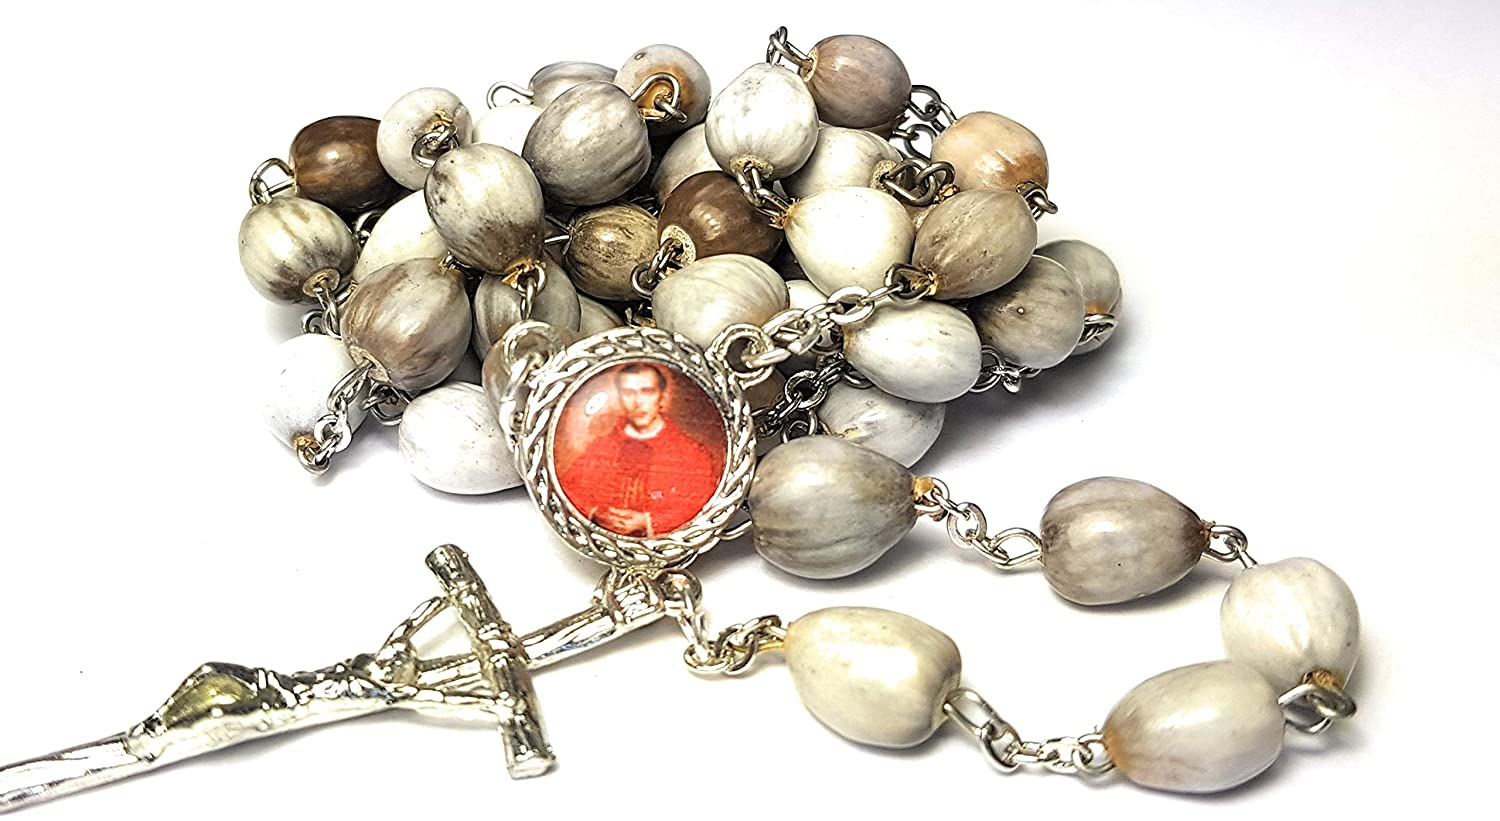 3rd Class relic Rosary Jerzy Popieluszko Martyr Catholic Church Solidarity Poland Polish Priest Defender of Human Rights and Religious Freedom Organic Job's Tears